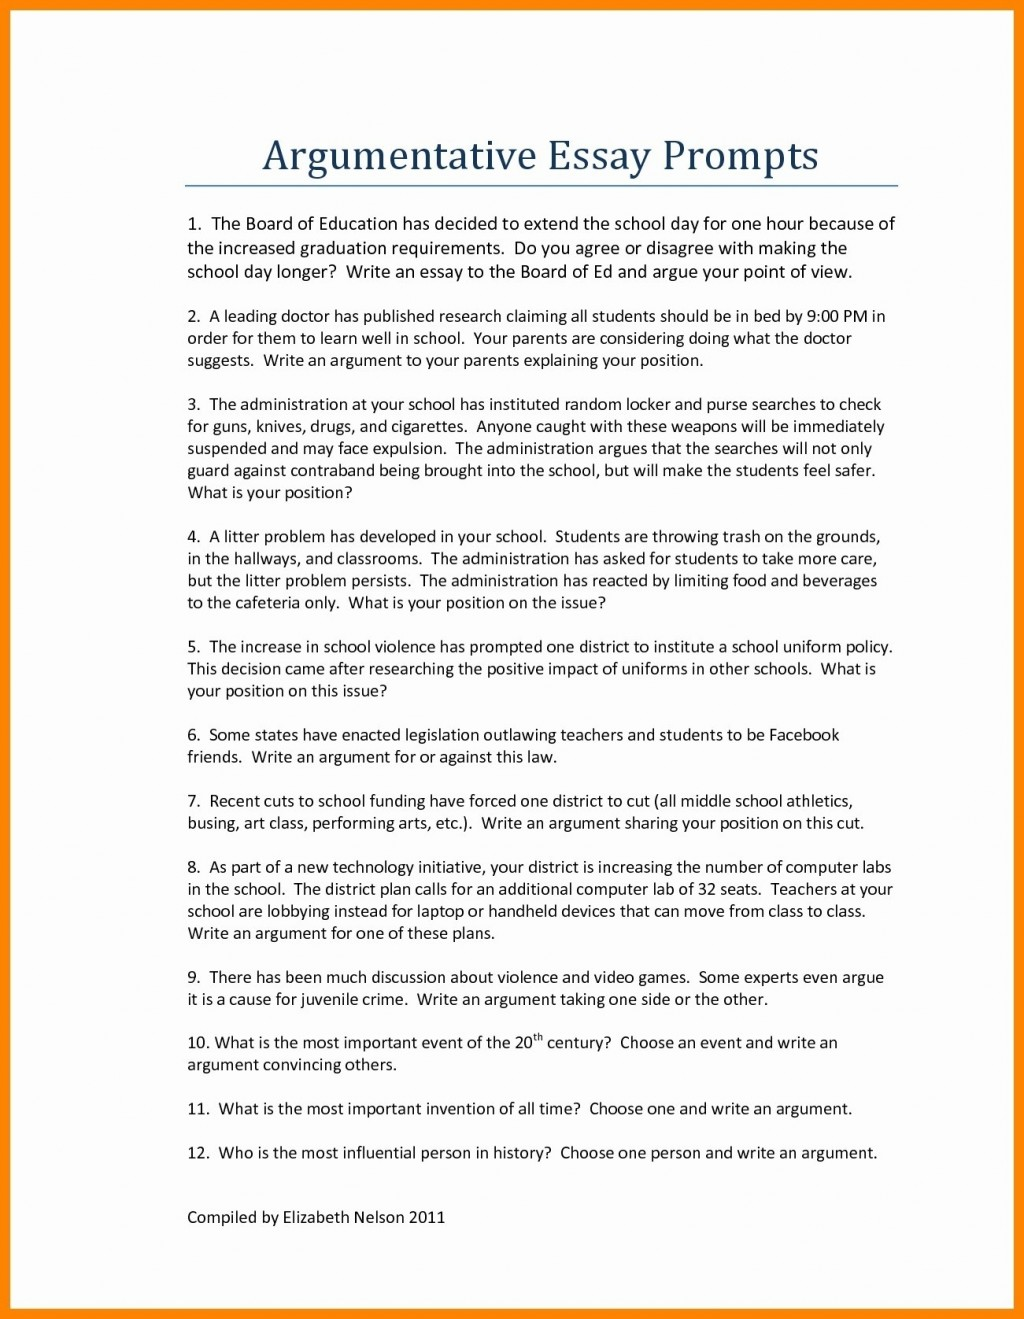 012 Good Persuasive Essayics For Middle School As Well Argumentative Hooks Examples Printables Corner College Thesis